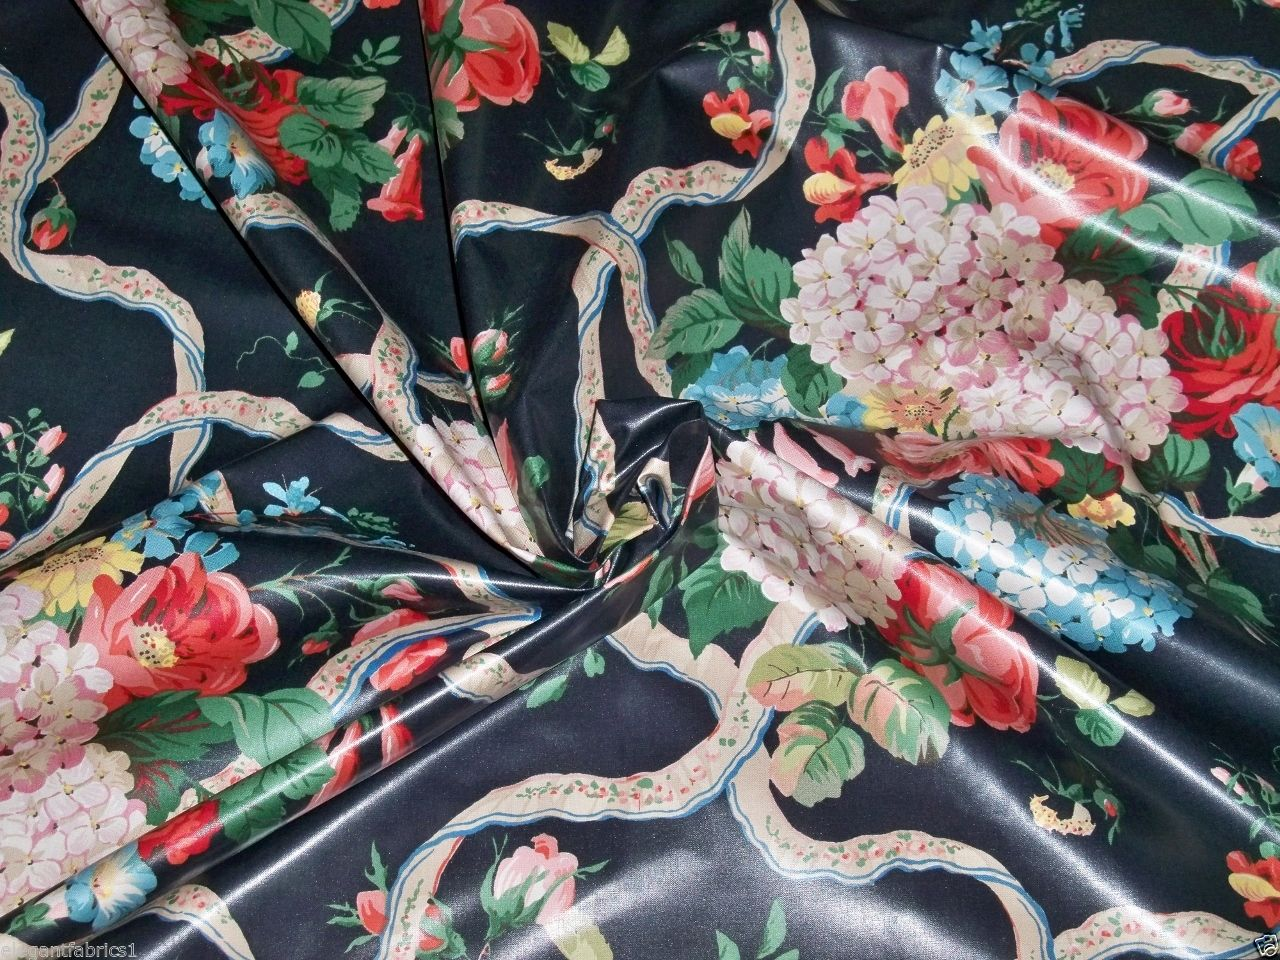 Chintz fabric, showing the reflective surface. Source: thesilktoilefabricgenie.com